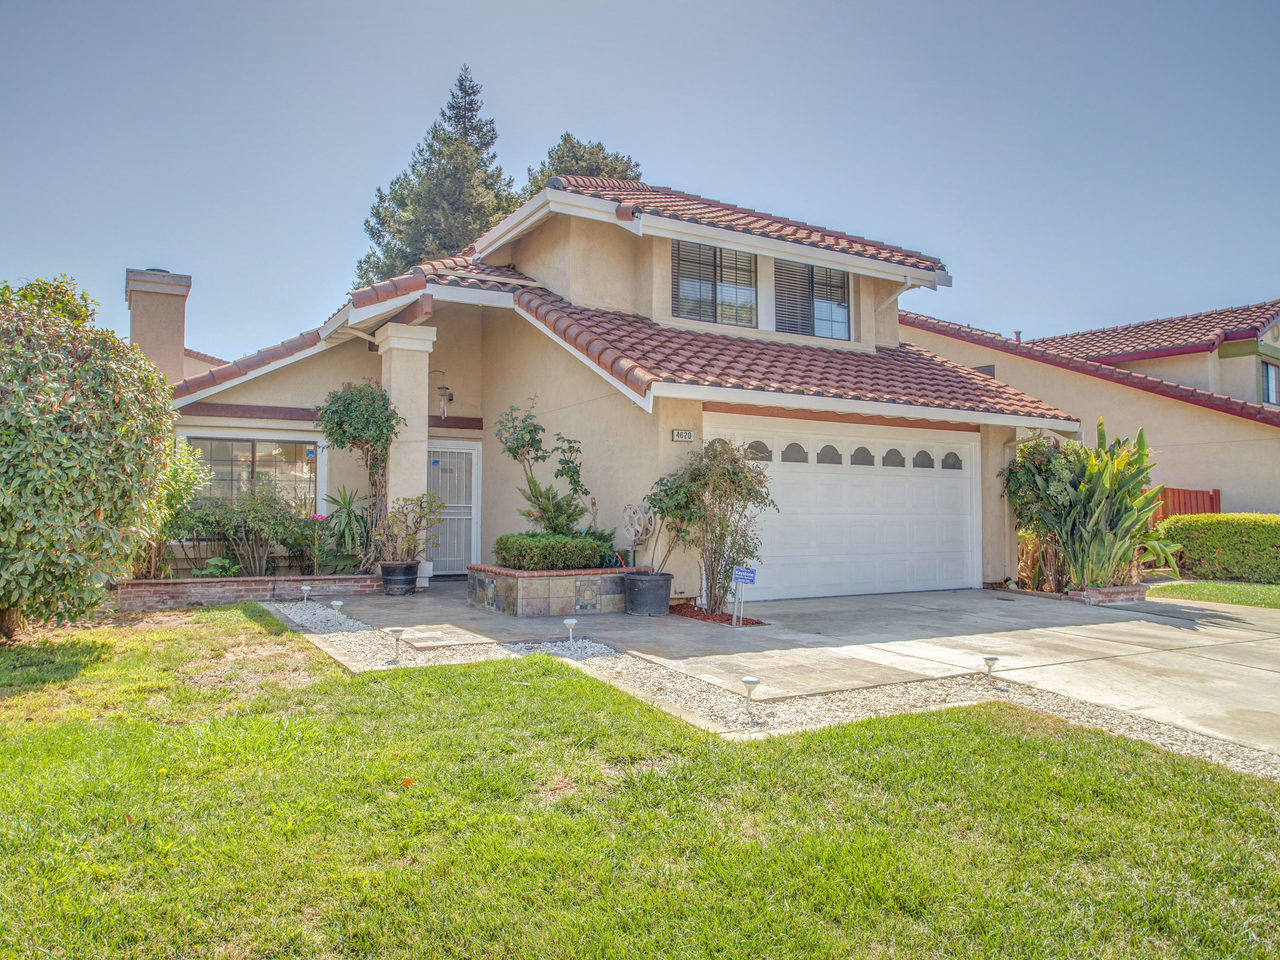 4620 Kelso St Union City CA-MLS_Size-002-15-Front Exterior-1280x960-72dpi.jpg